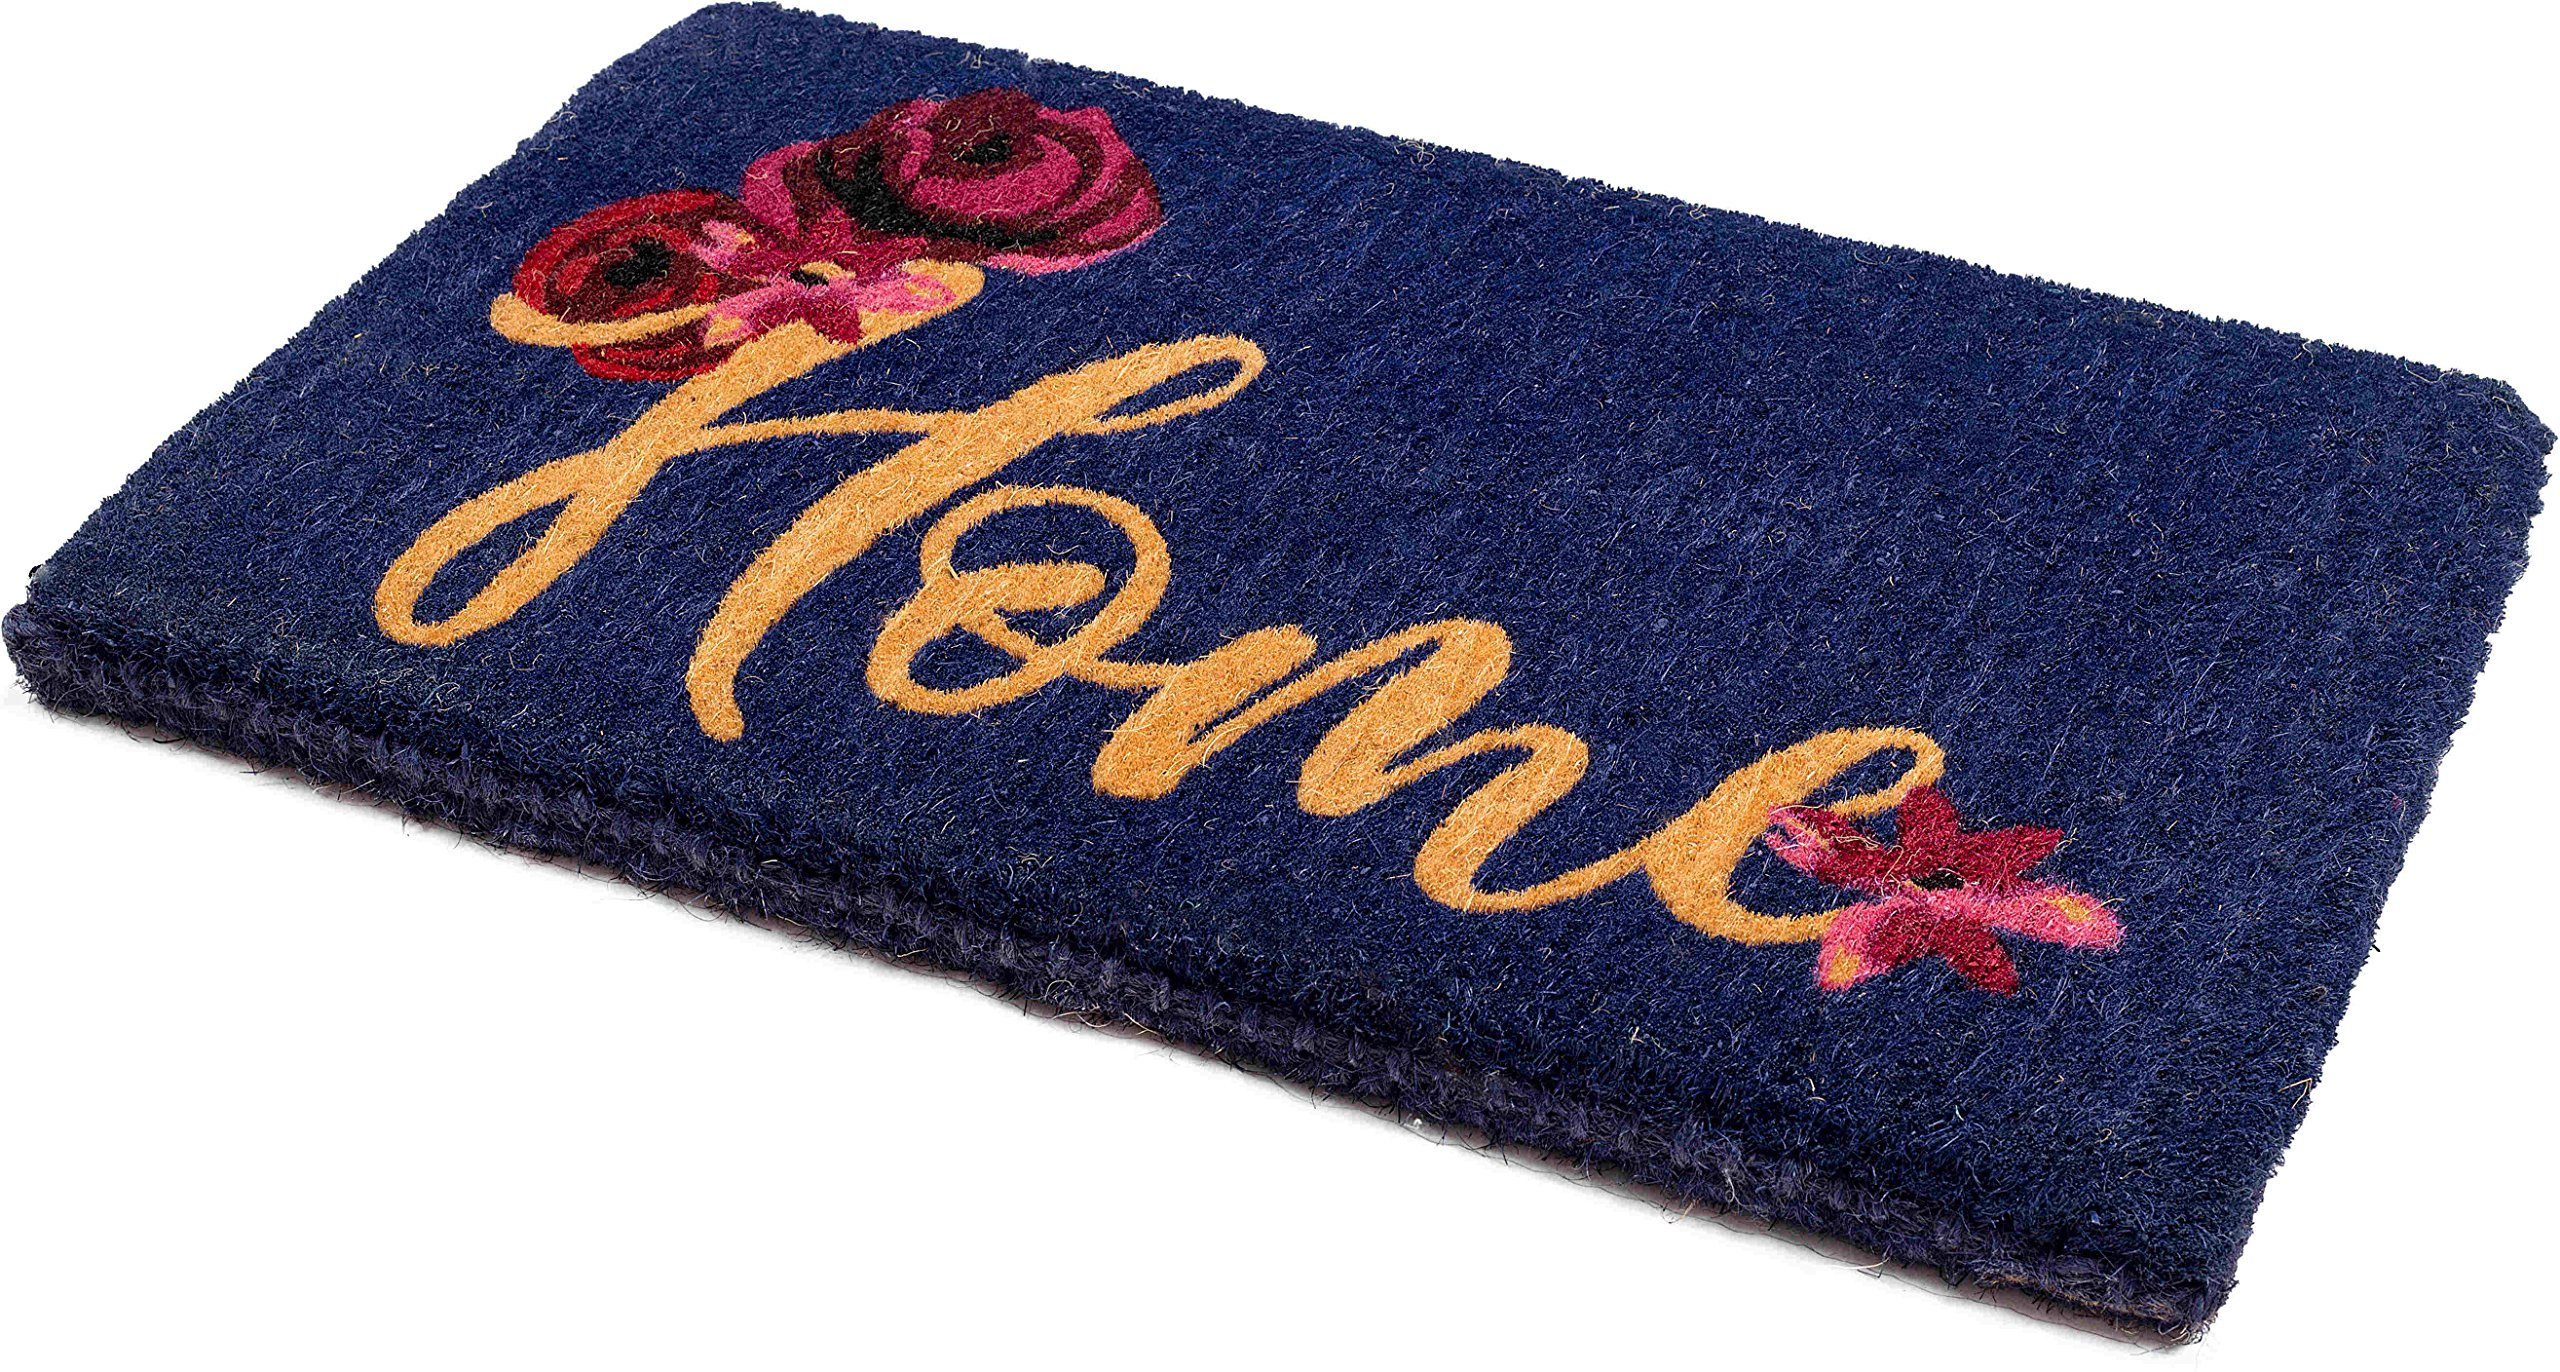 Handwoven, Extra Thick Doormat | Entryway Door mat For Patio, Front Door | Decorative All-Season | Floral Home | 18'' x 30'' x 1.60''